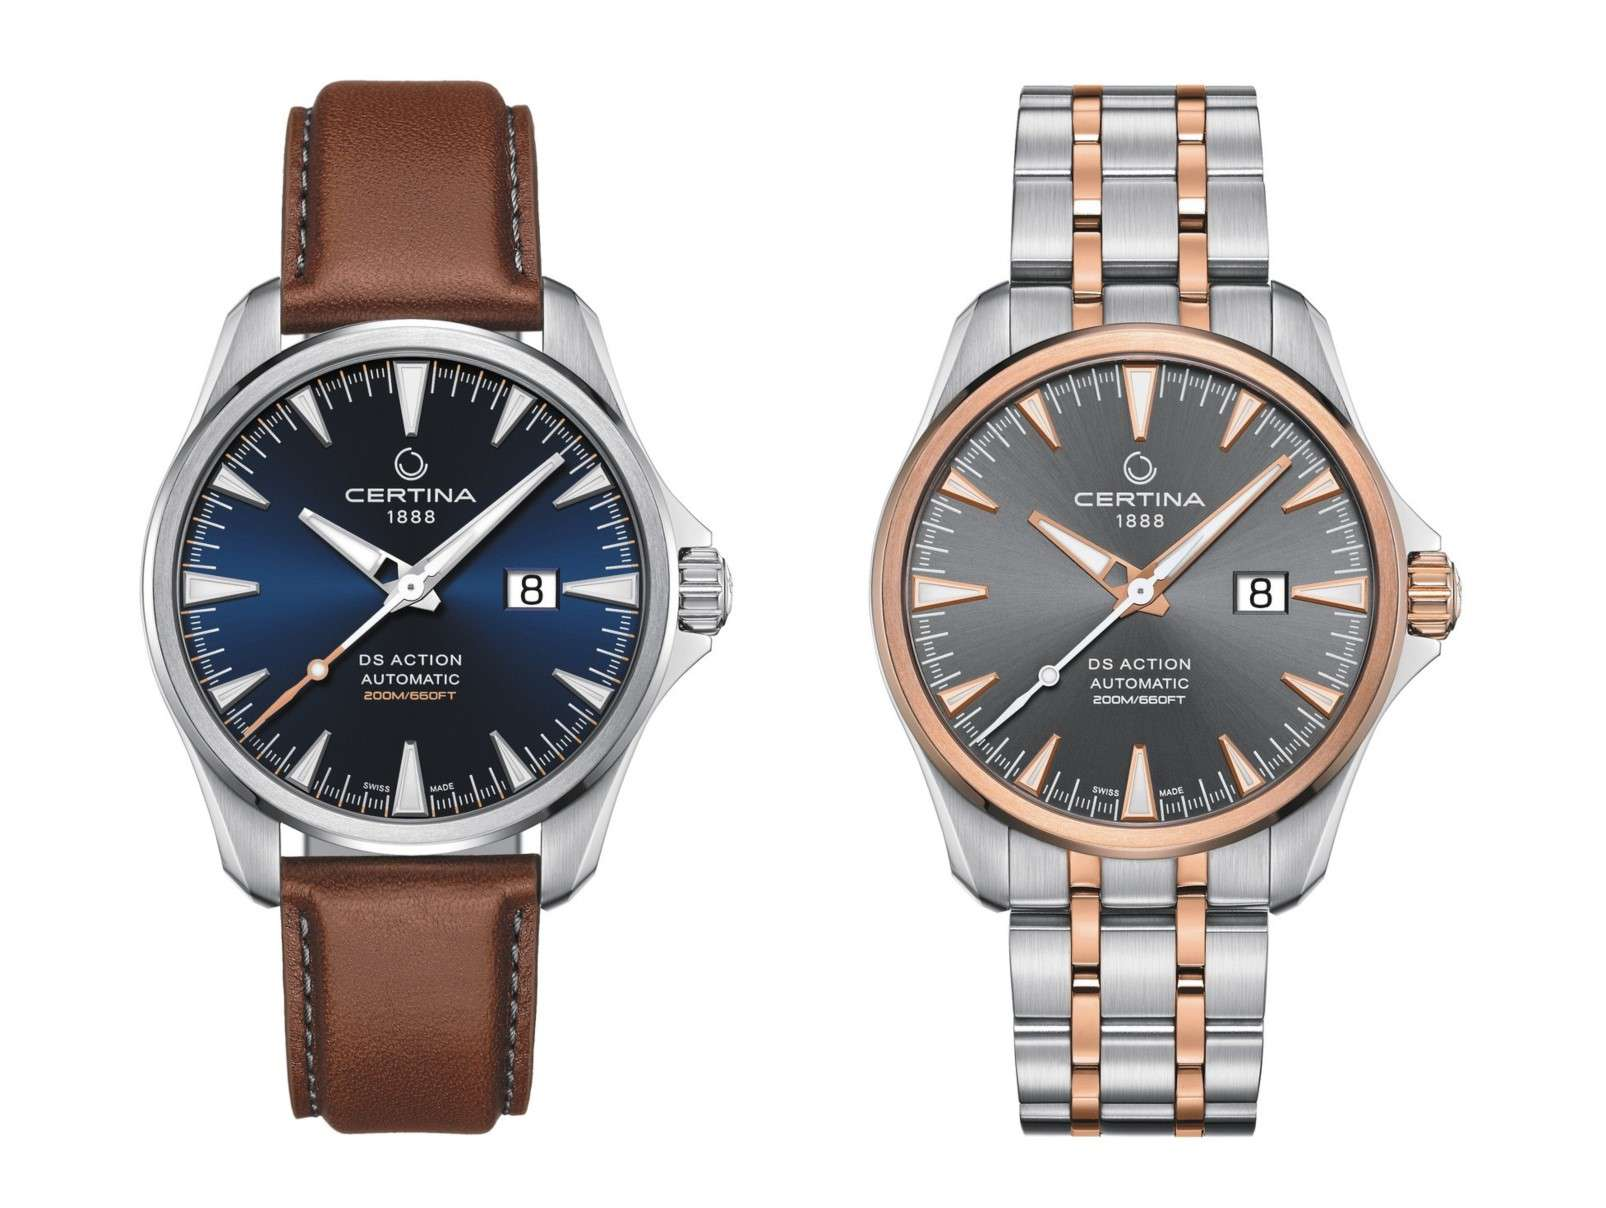 Certina DS Action Big Date Automatic 2 versions